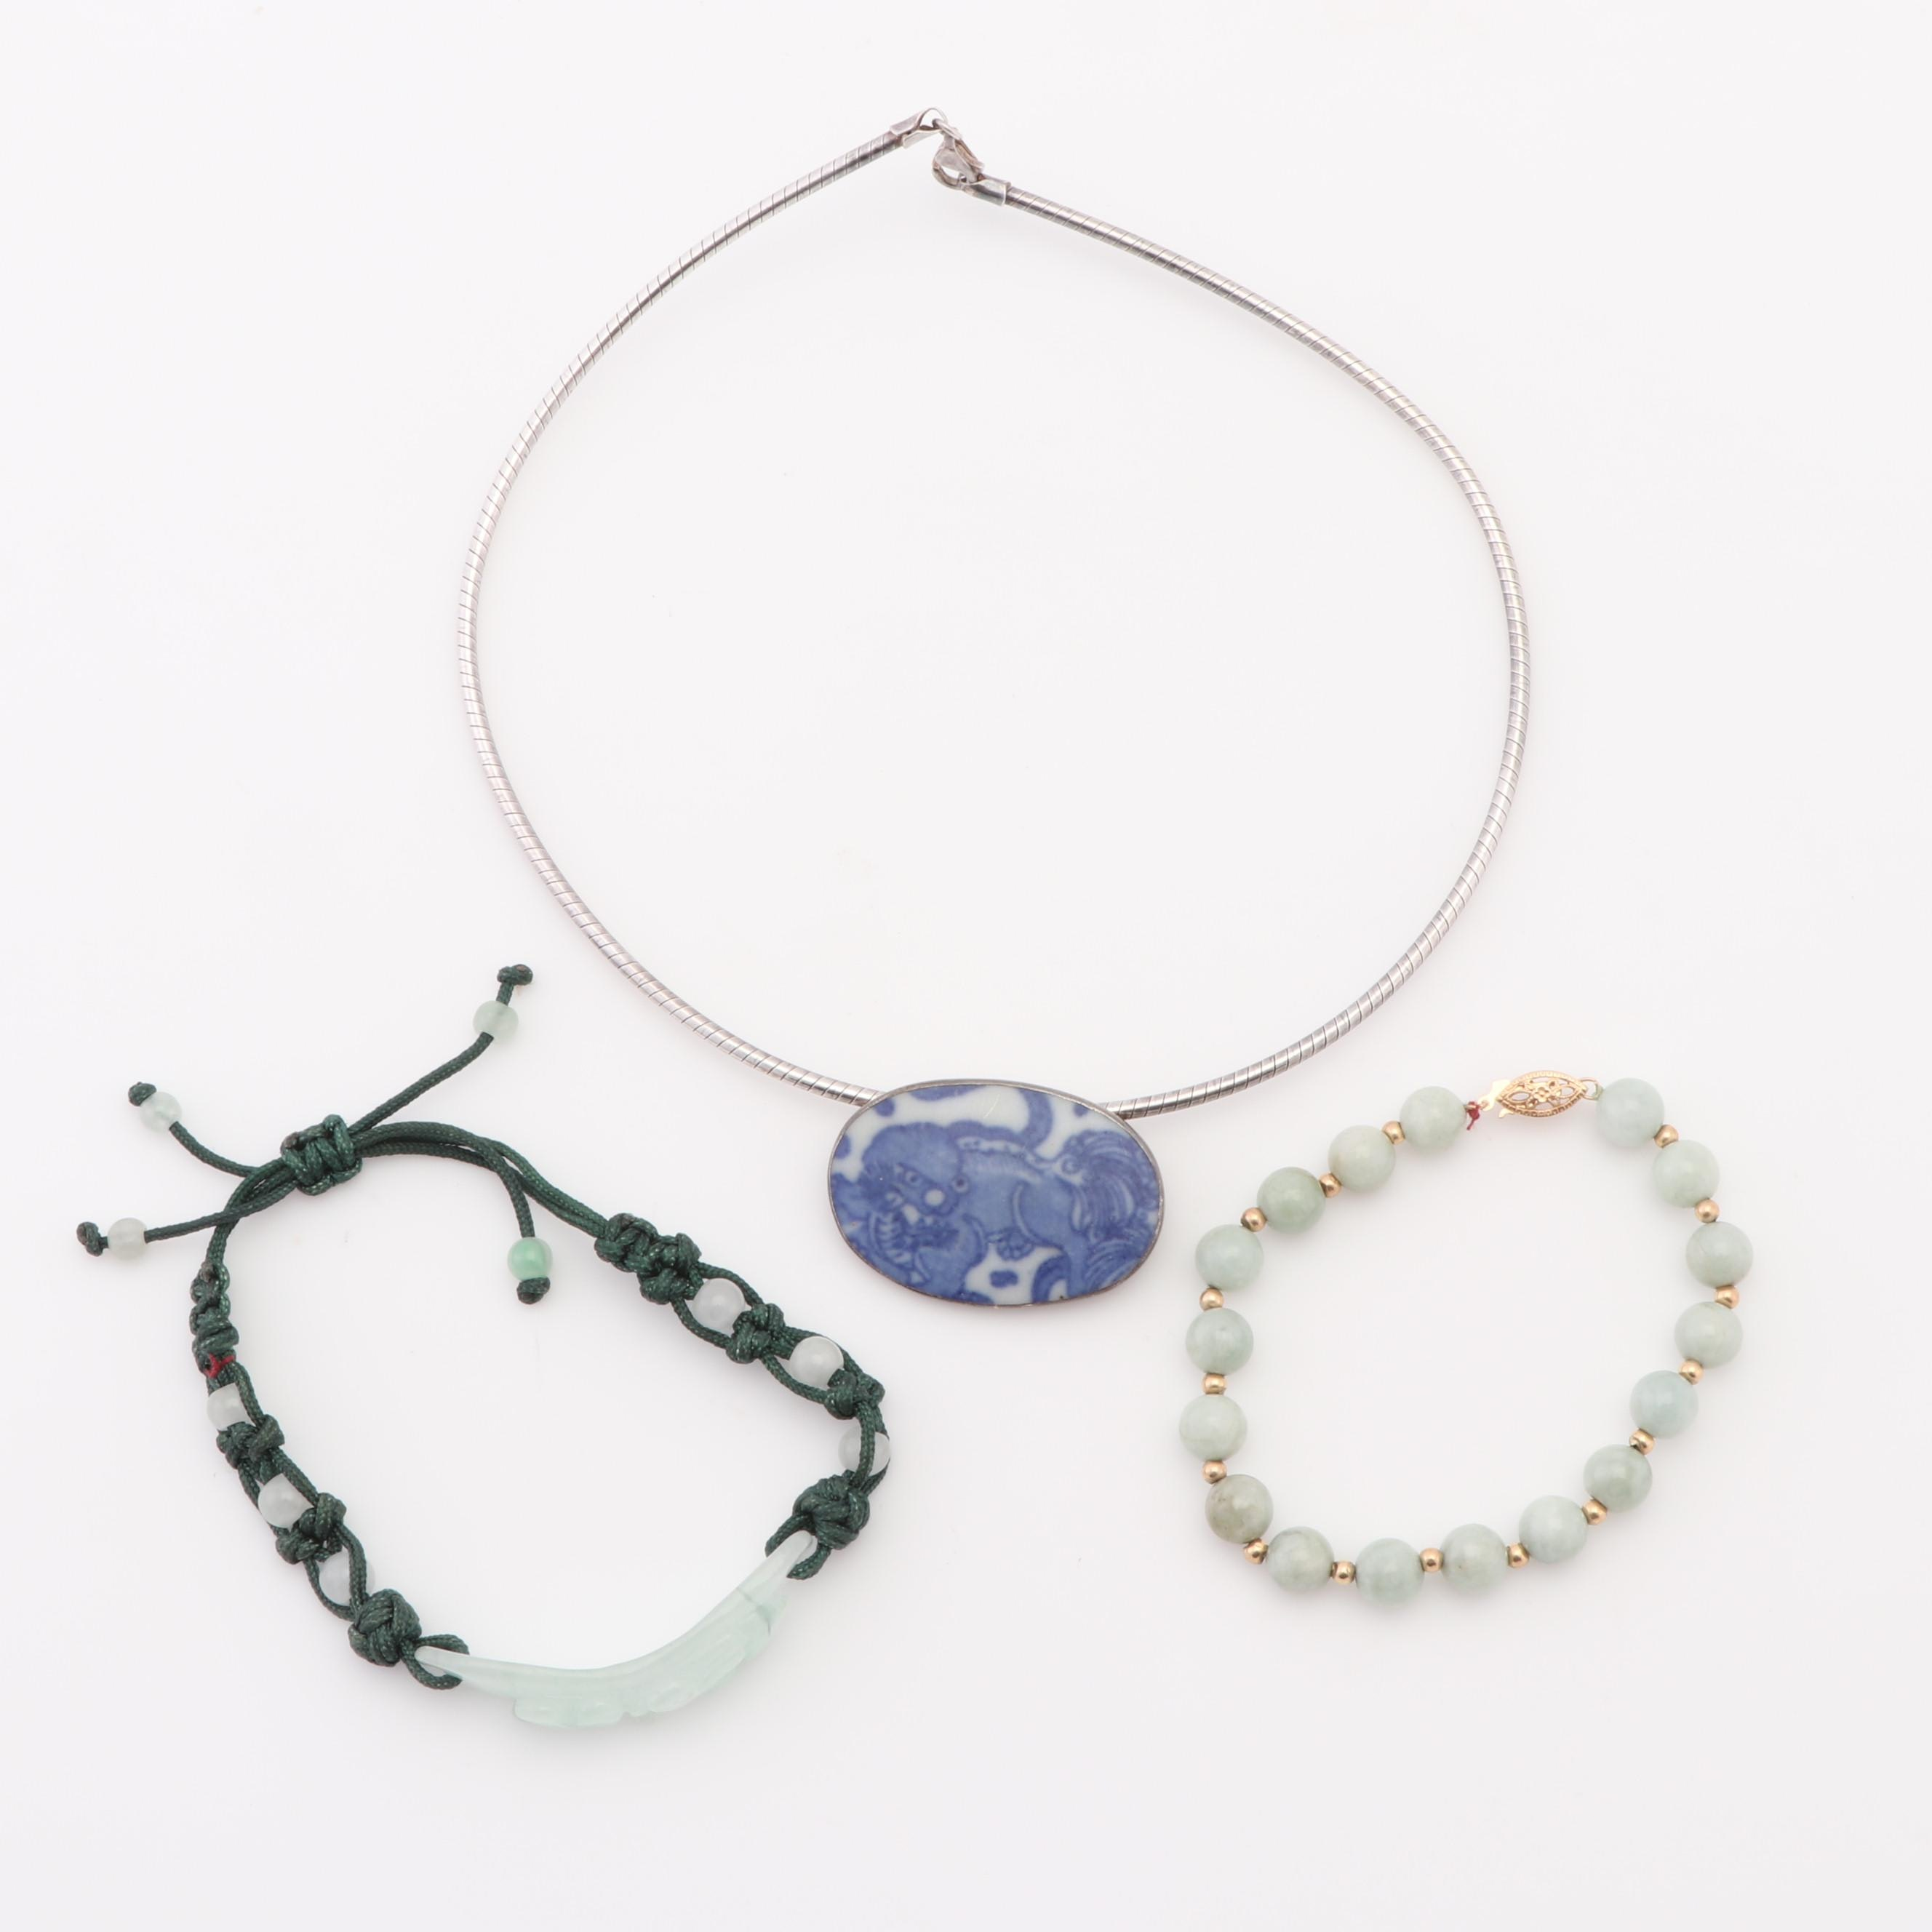 14K Yellow Gold and Sterling Silver Jewelry with Jade and Painted Ceramic